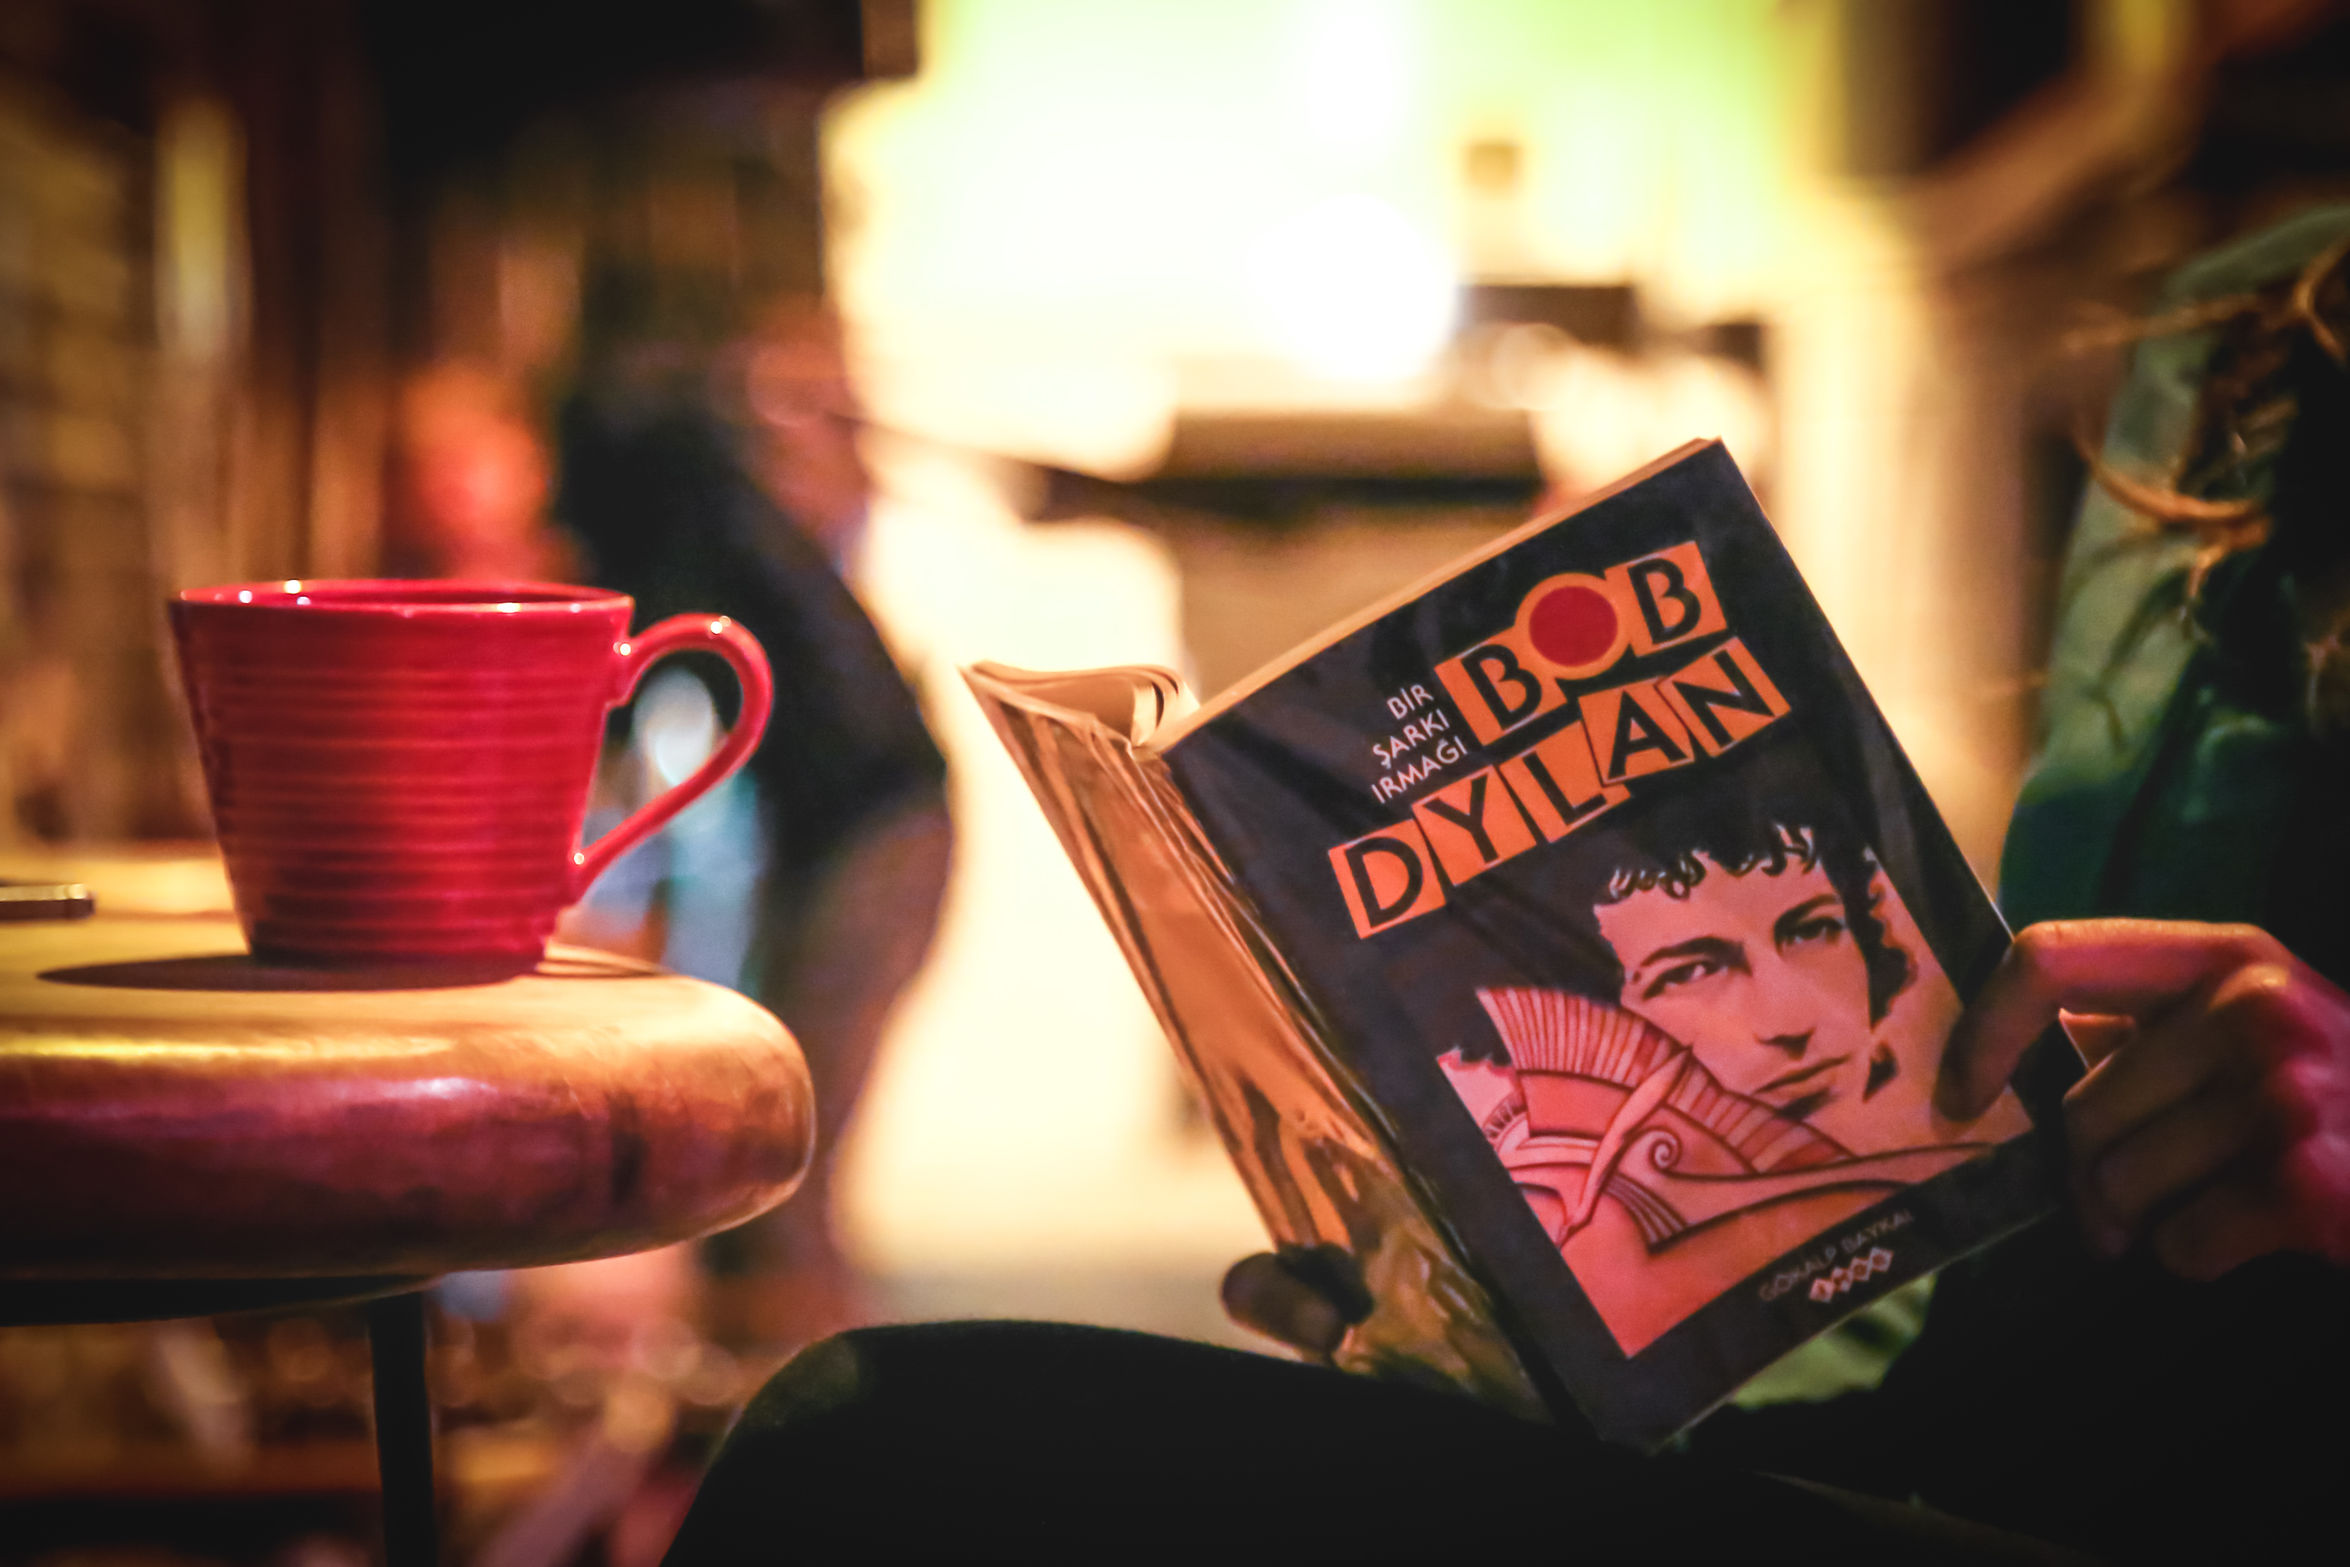 Relaxing times Close-up Coffee Filter Coffee Coffee Break Coffee Time Happy Hour Bar - Drink Establishment Eye4photography  Book Mug Bob Dylan Girl Coffeeandbooks